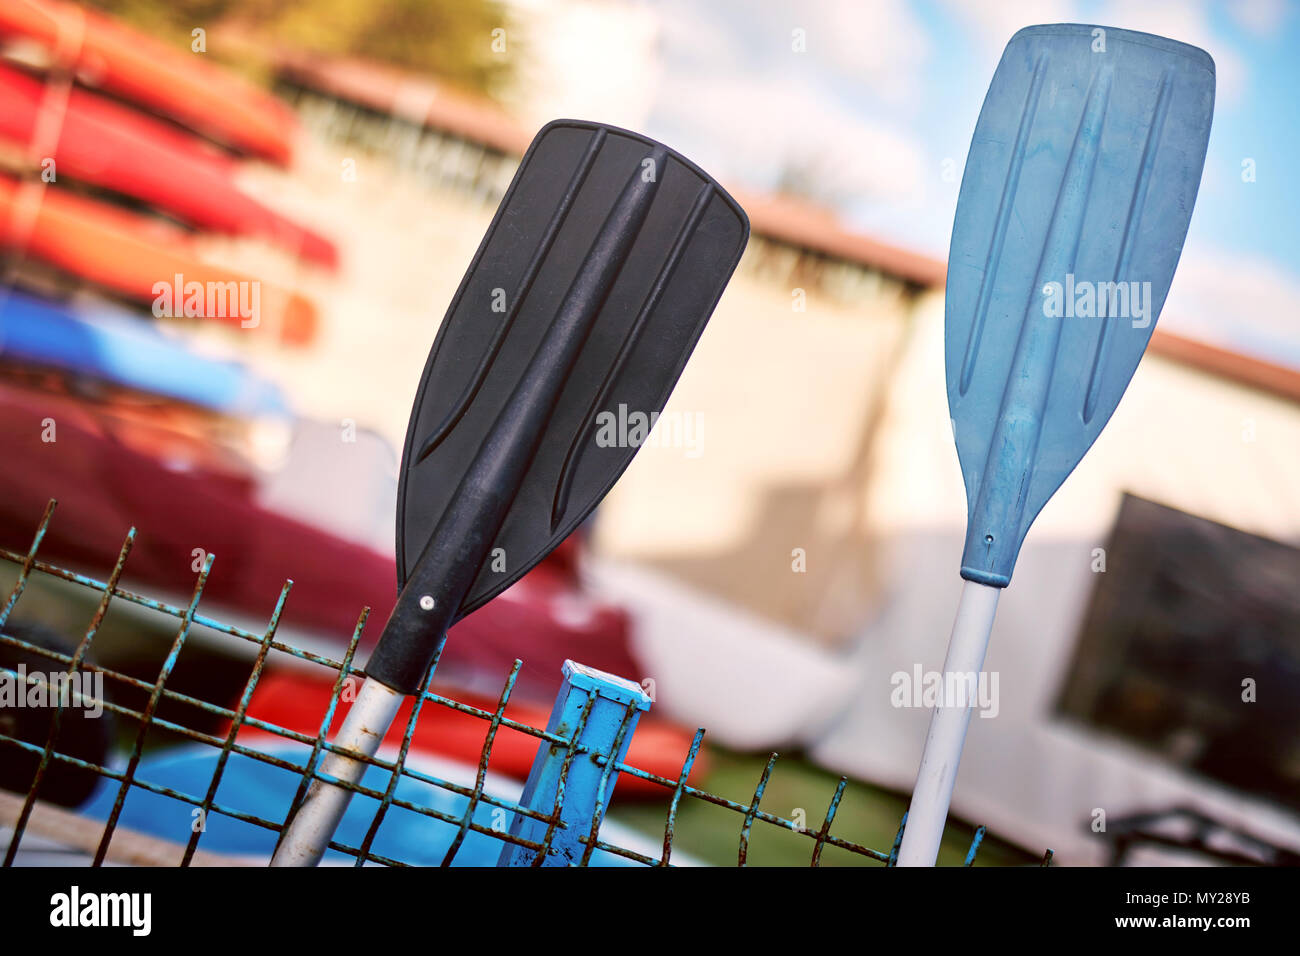 Black and blue oars for boat and canoe paddle in front of a water sport center. Canoes in the background. - Stock Image